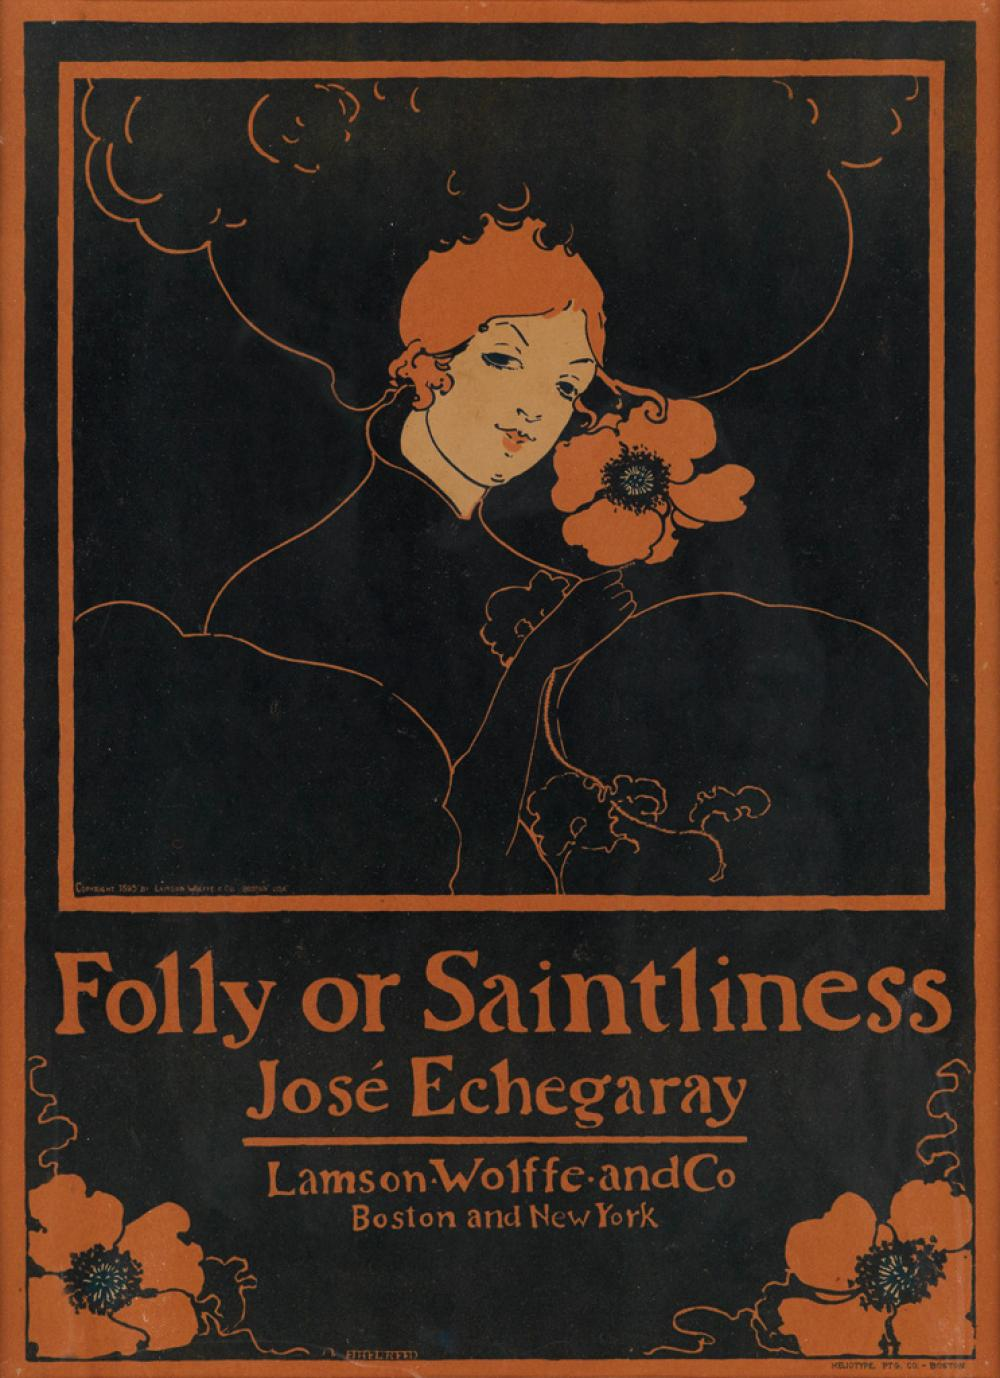 ETHEL REED (1876-1912). FOLLY OR SAINTLINESS. 1895. 19x14 inches, 49x36 cm. Heliotype Ptg. Co., Boston.